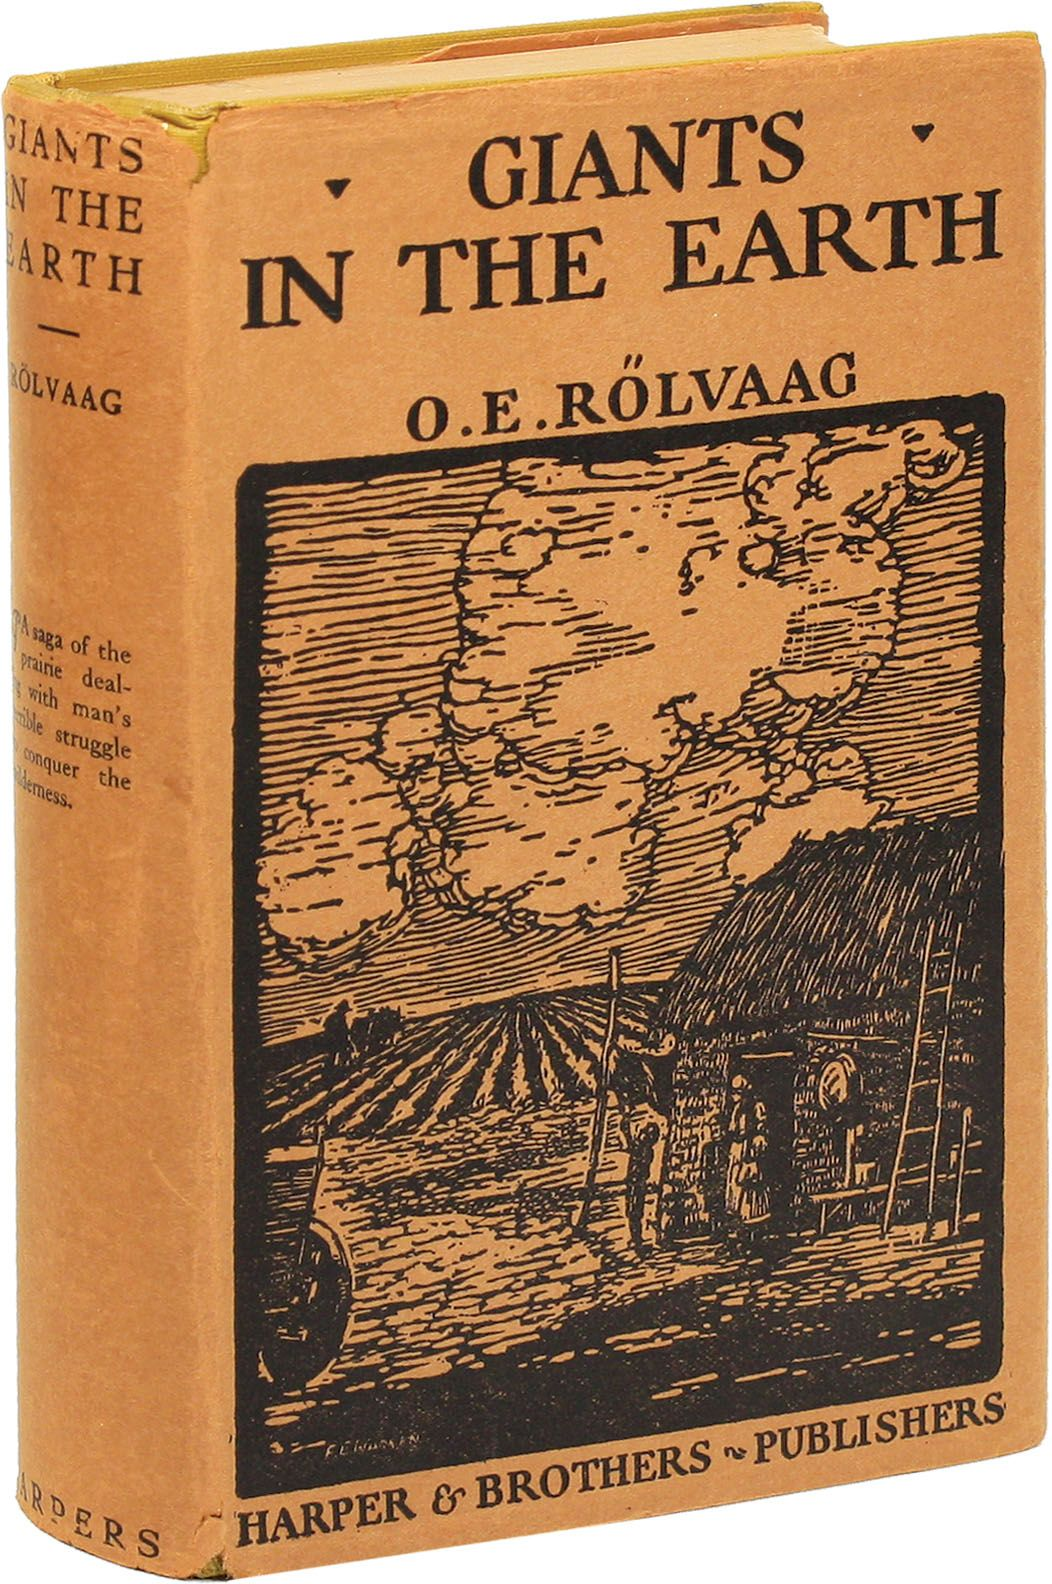 Giants In The Earth A Saga Of The Prairie By Social Fiction O E Rolvaag Scandinavian Americans On Lorne Bair Rare Books Books Rare Books Writers And Poets